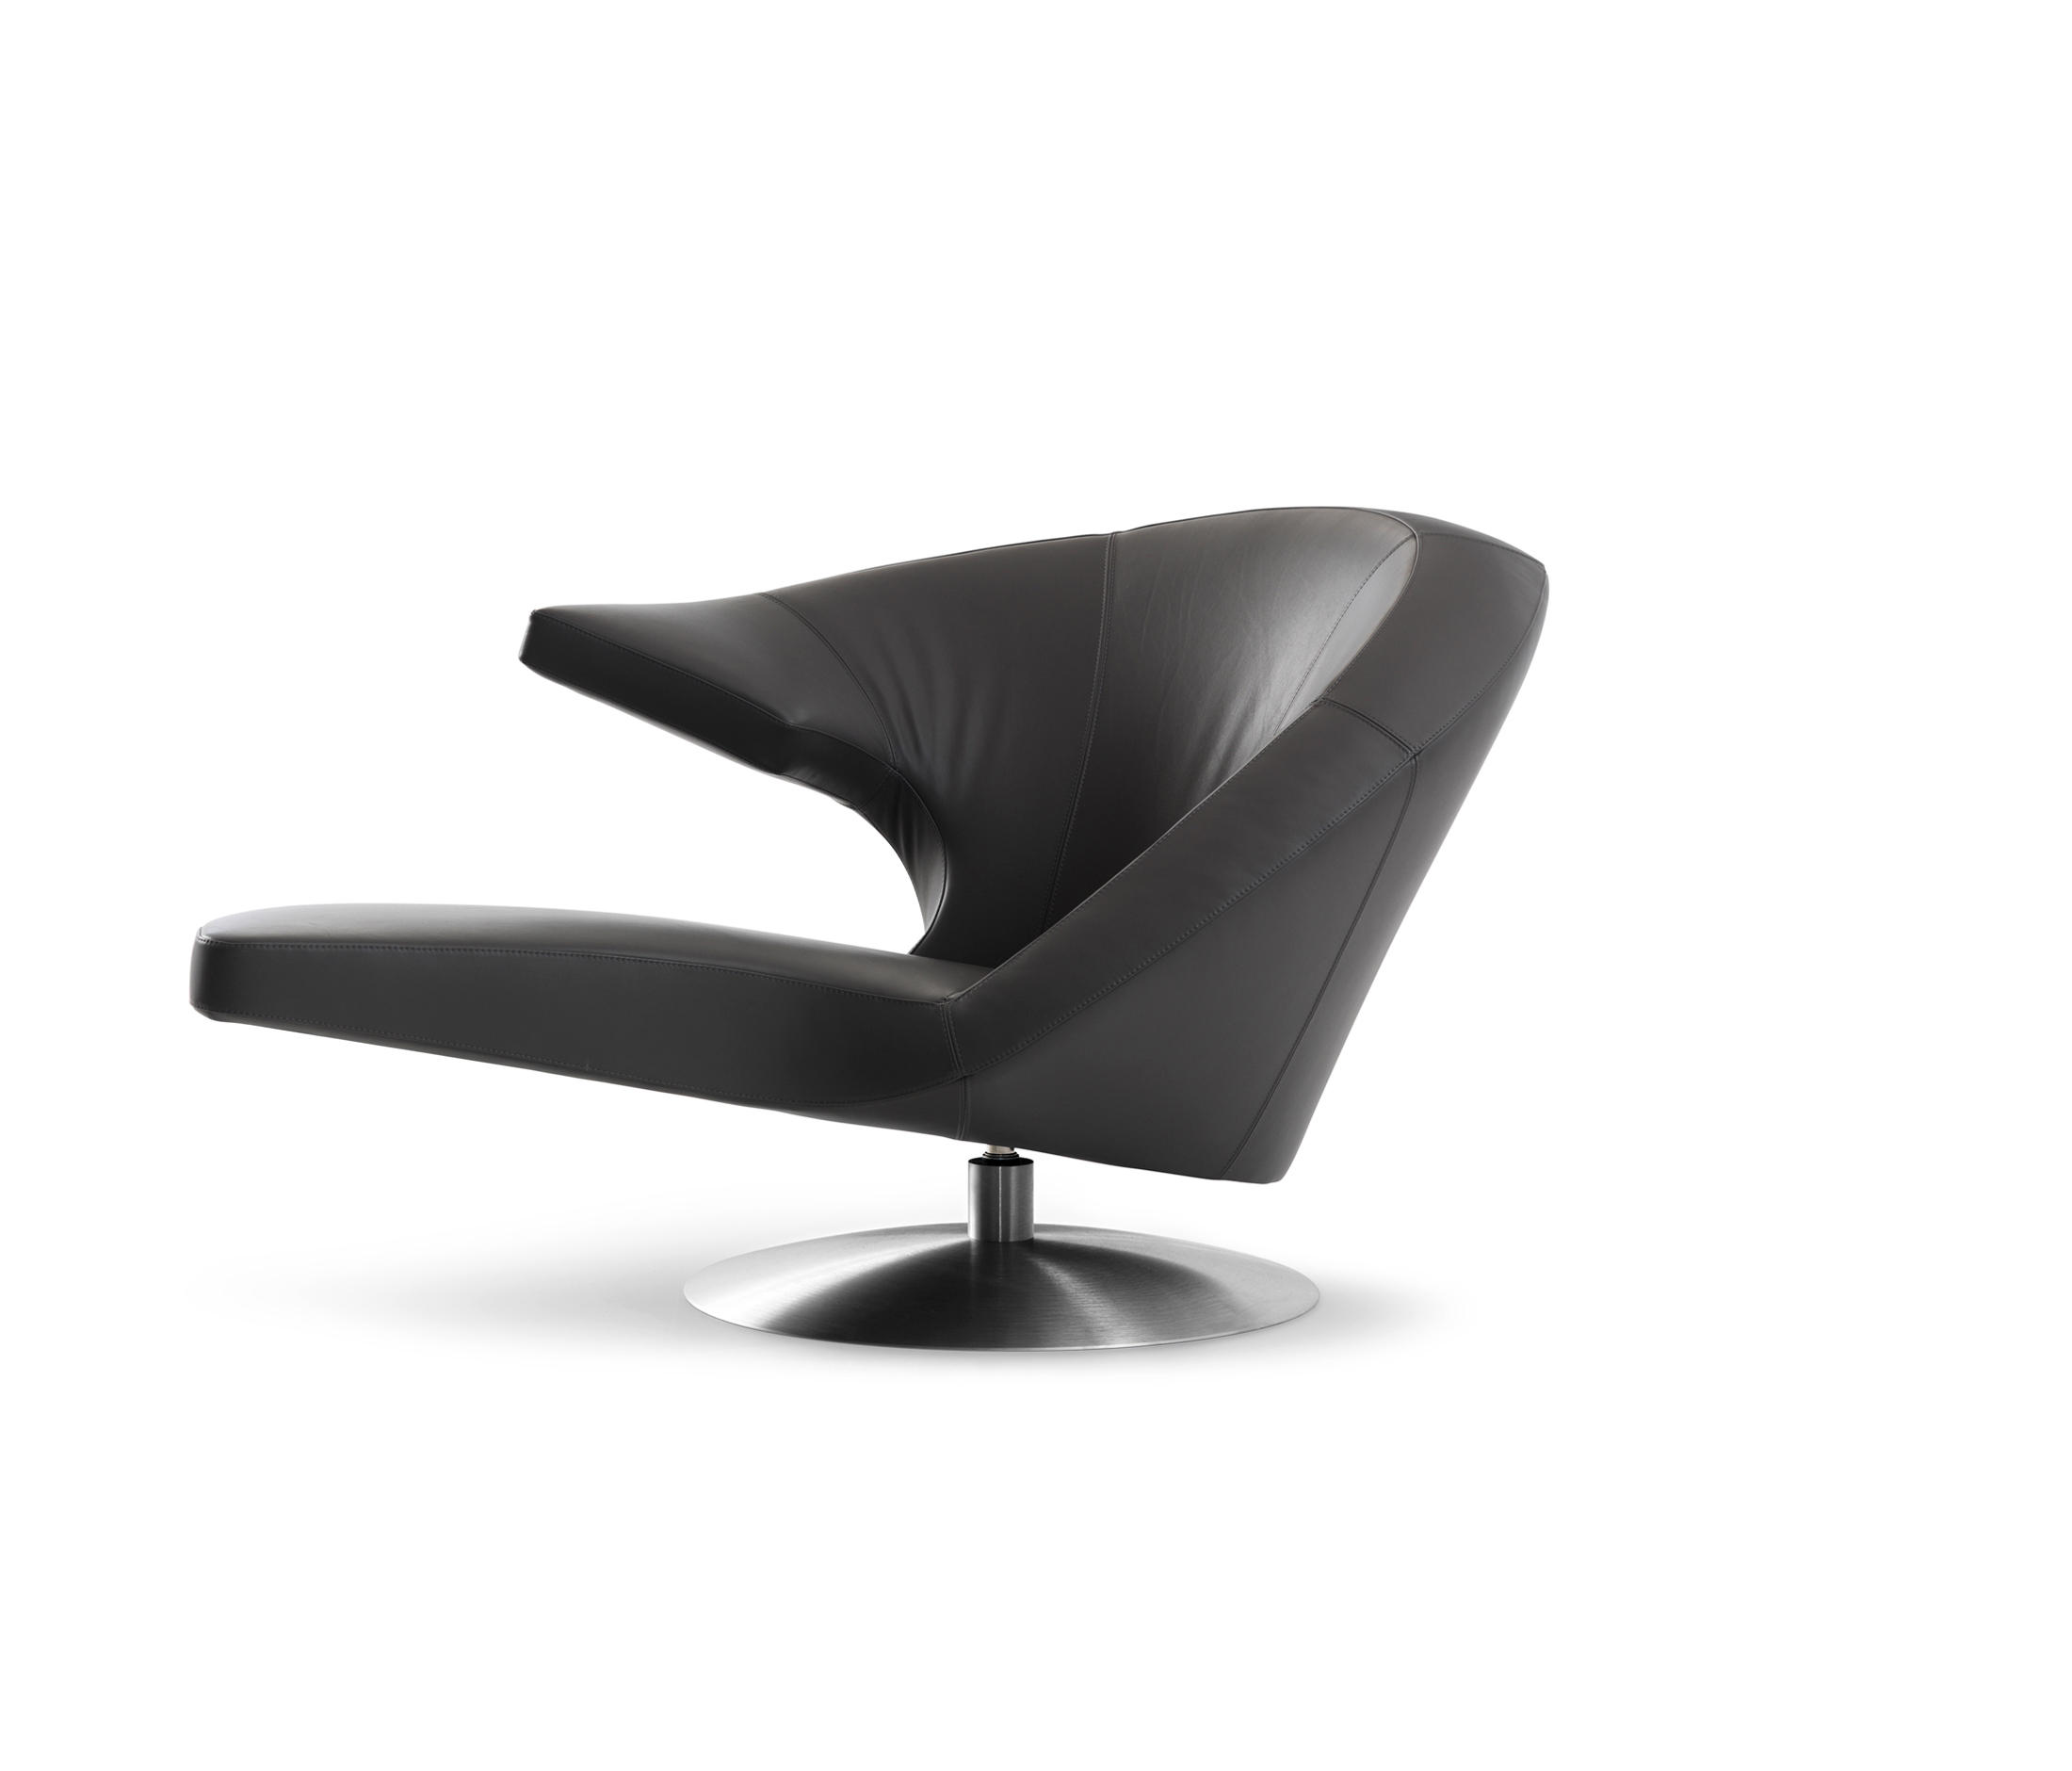 Parabolica Sessel Parabolica Sessel Chaise Longues Von Leolux Architonic